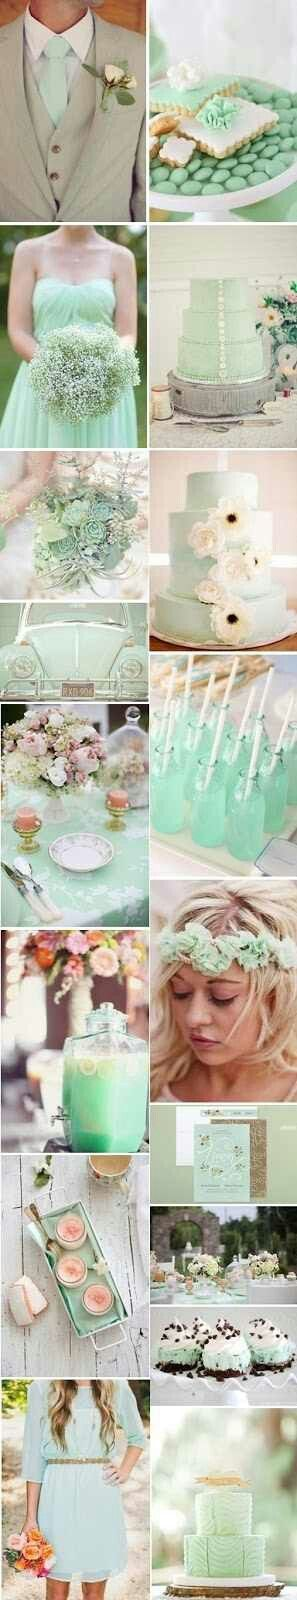 mint green wedding decorations 1000 ideas about mint tie on wedding ties 5954